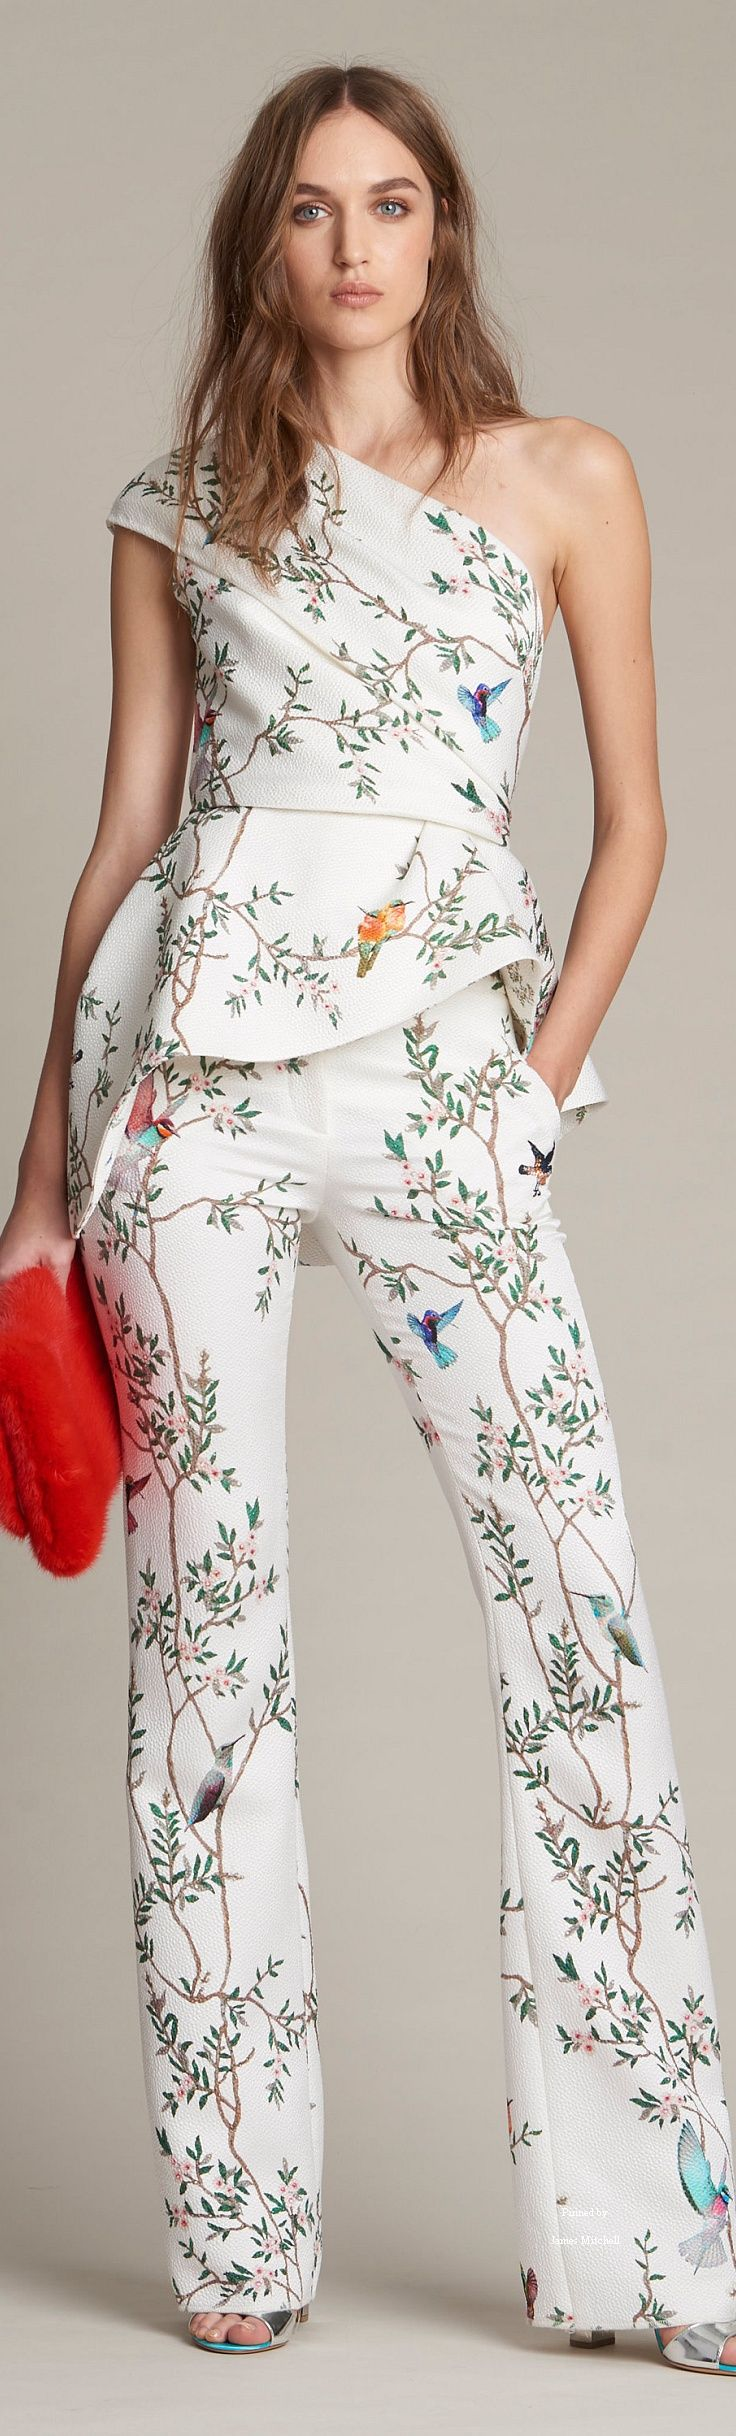 Monique Lhuillier Collection  Pre-Fall 2016 women fashion outfit clothing style apparel @roressclothes closet ideas